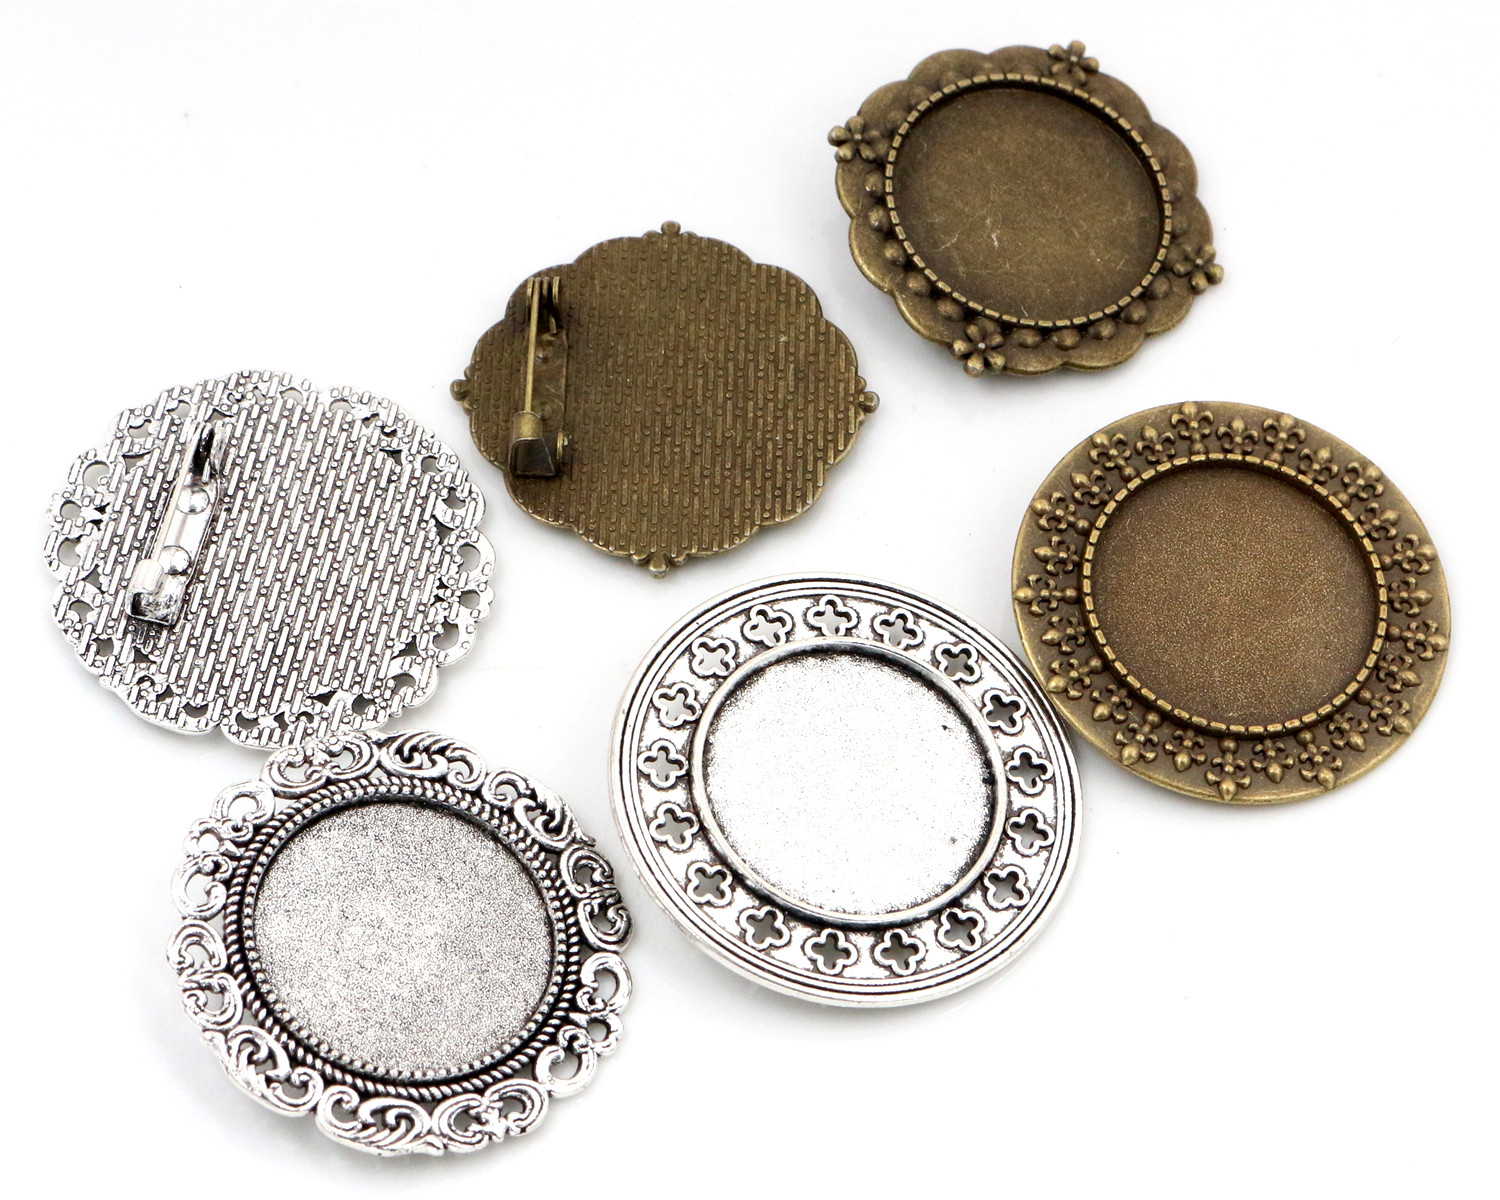 New Fashion  2pcs 25mm Inner Size 4 Style Antique Silver and Bronze Brooch Pierced Cameo Cabochon Base SettingNew Fashion  2pcs 25mm Inner Size 4 Style Antique Silver and Bronze Brooch Pierced Cameo Cabochon Base Setting